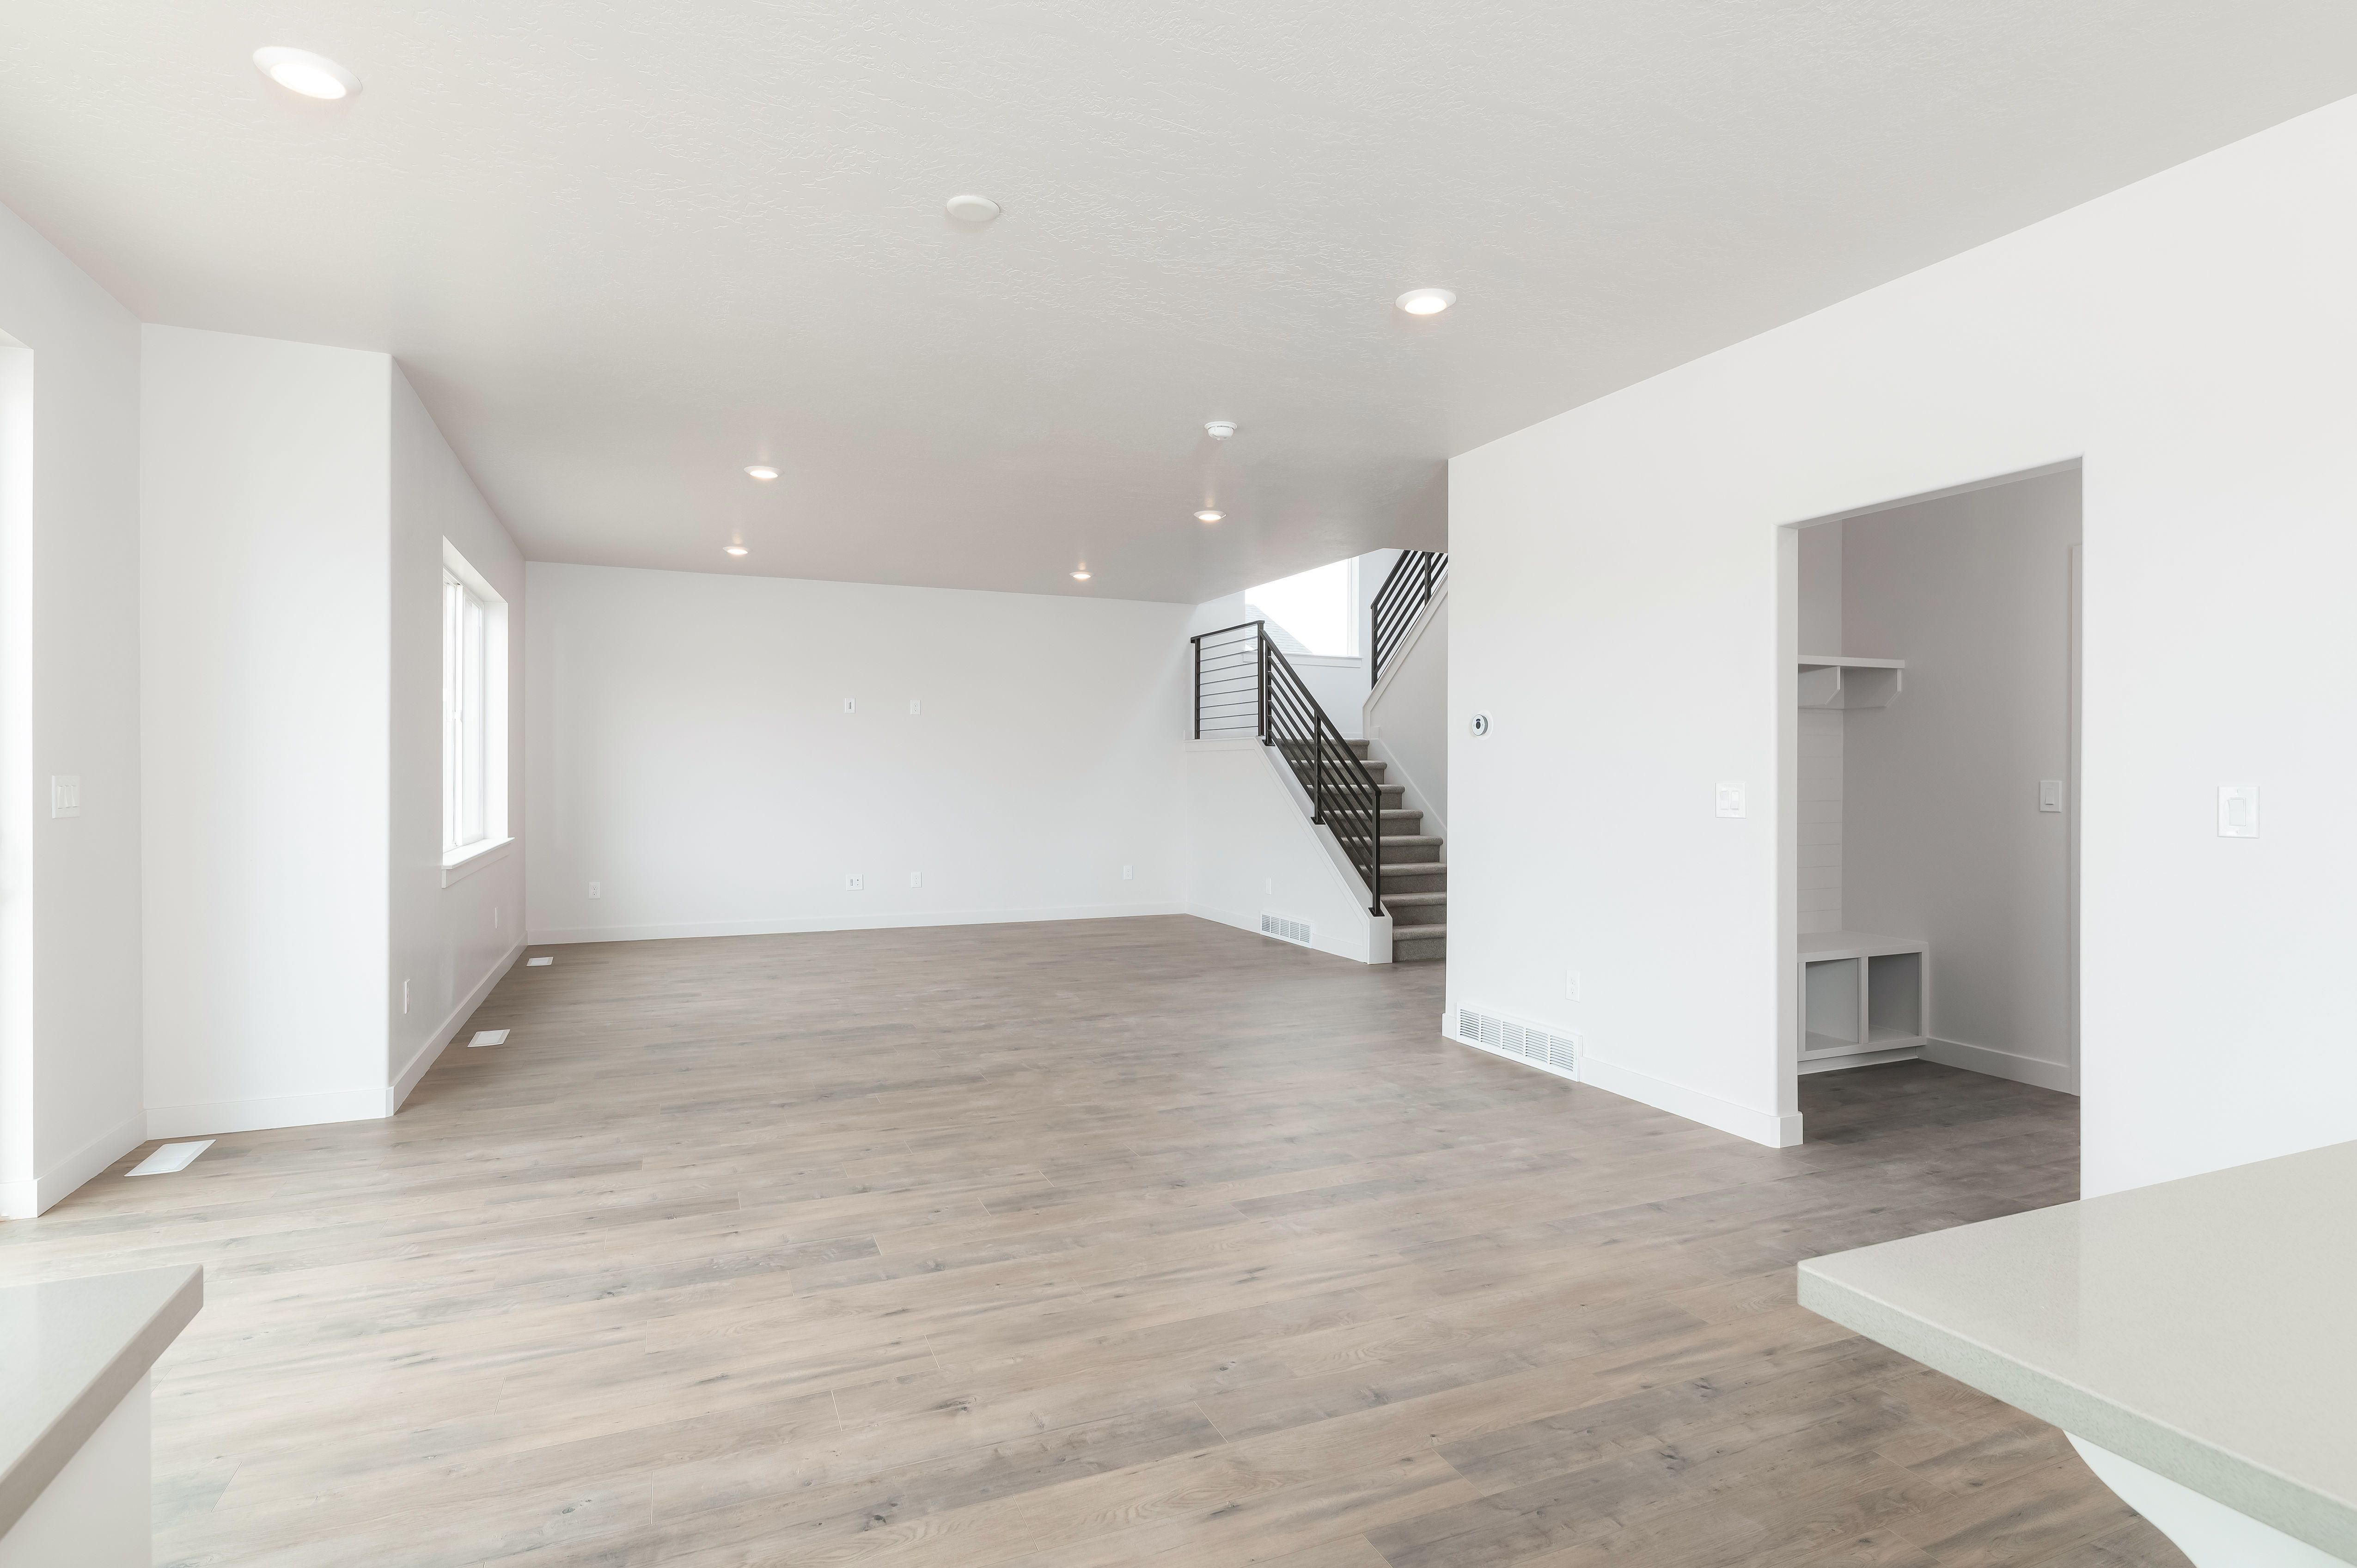 A new home is a blank canvas. How would you transform this